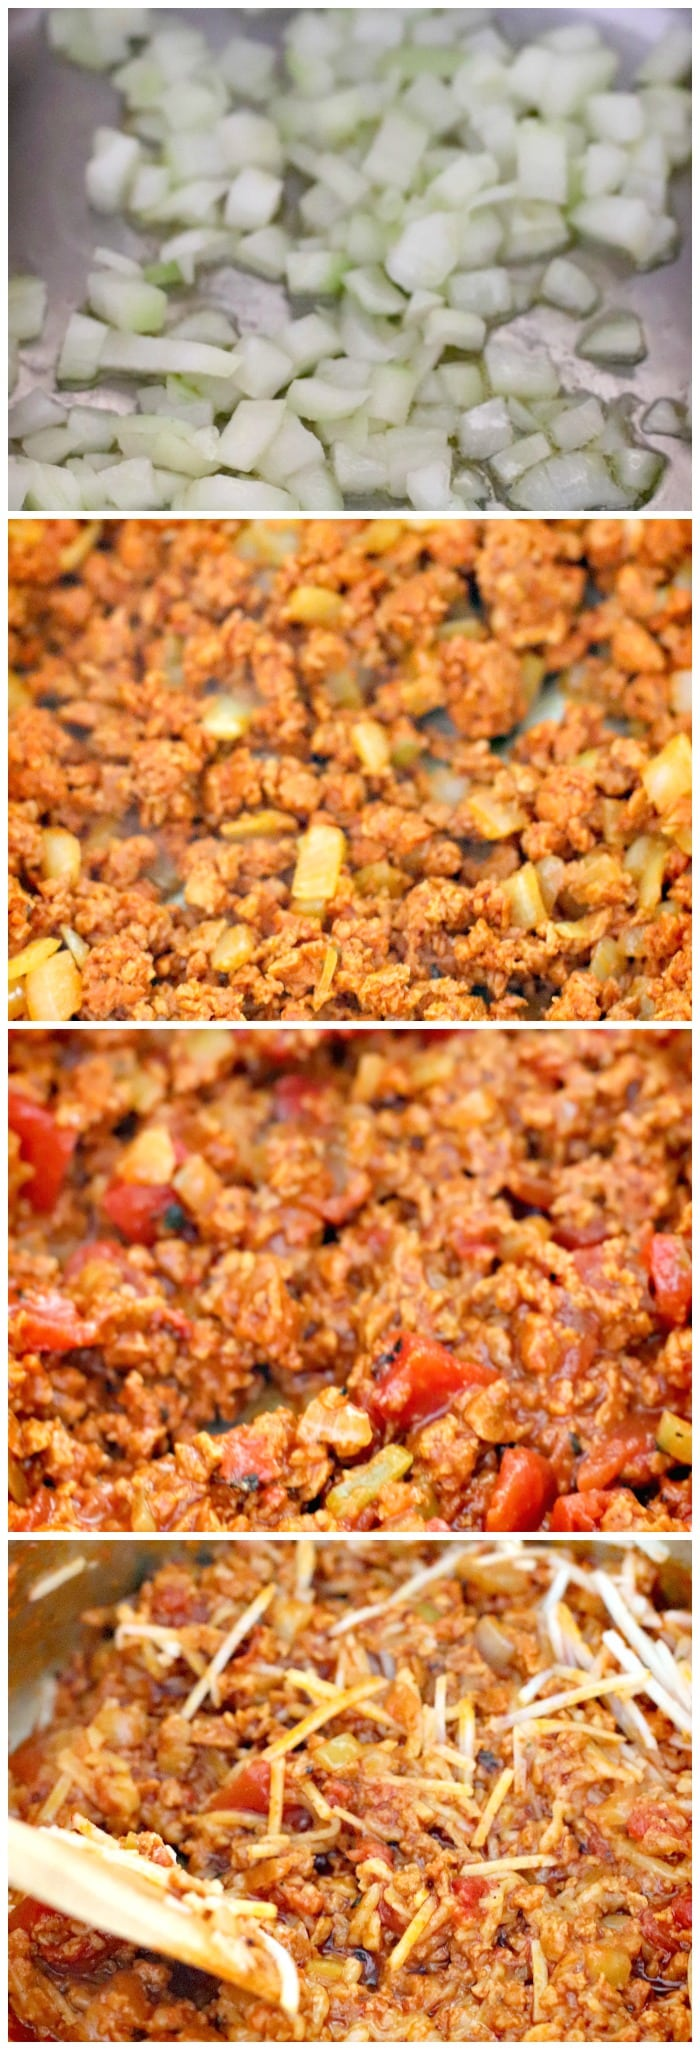 Making Cheesy Taco Pasta with onion, MorningStar Chorizo Crumbles, fire roasted diced tomatoes, and non-dairy shredded pepper jack cheese